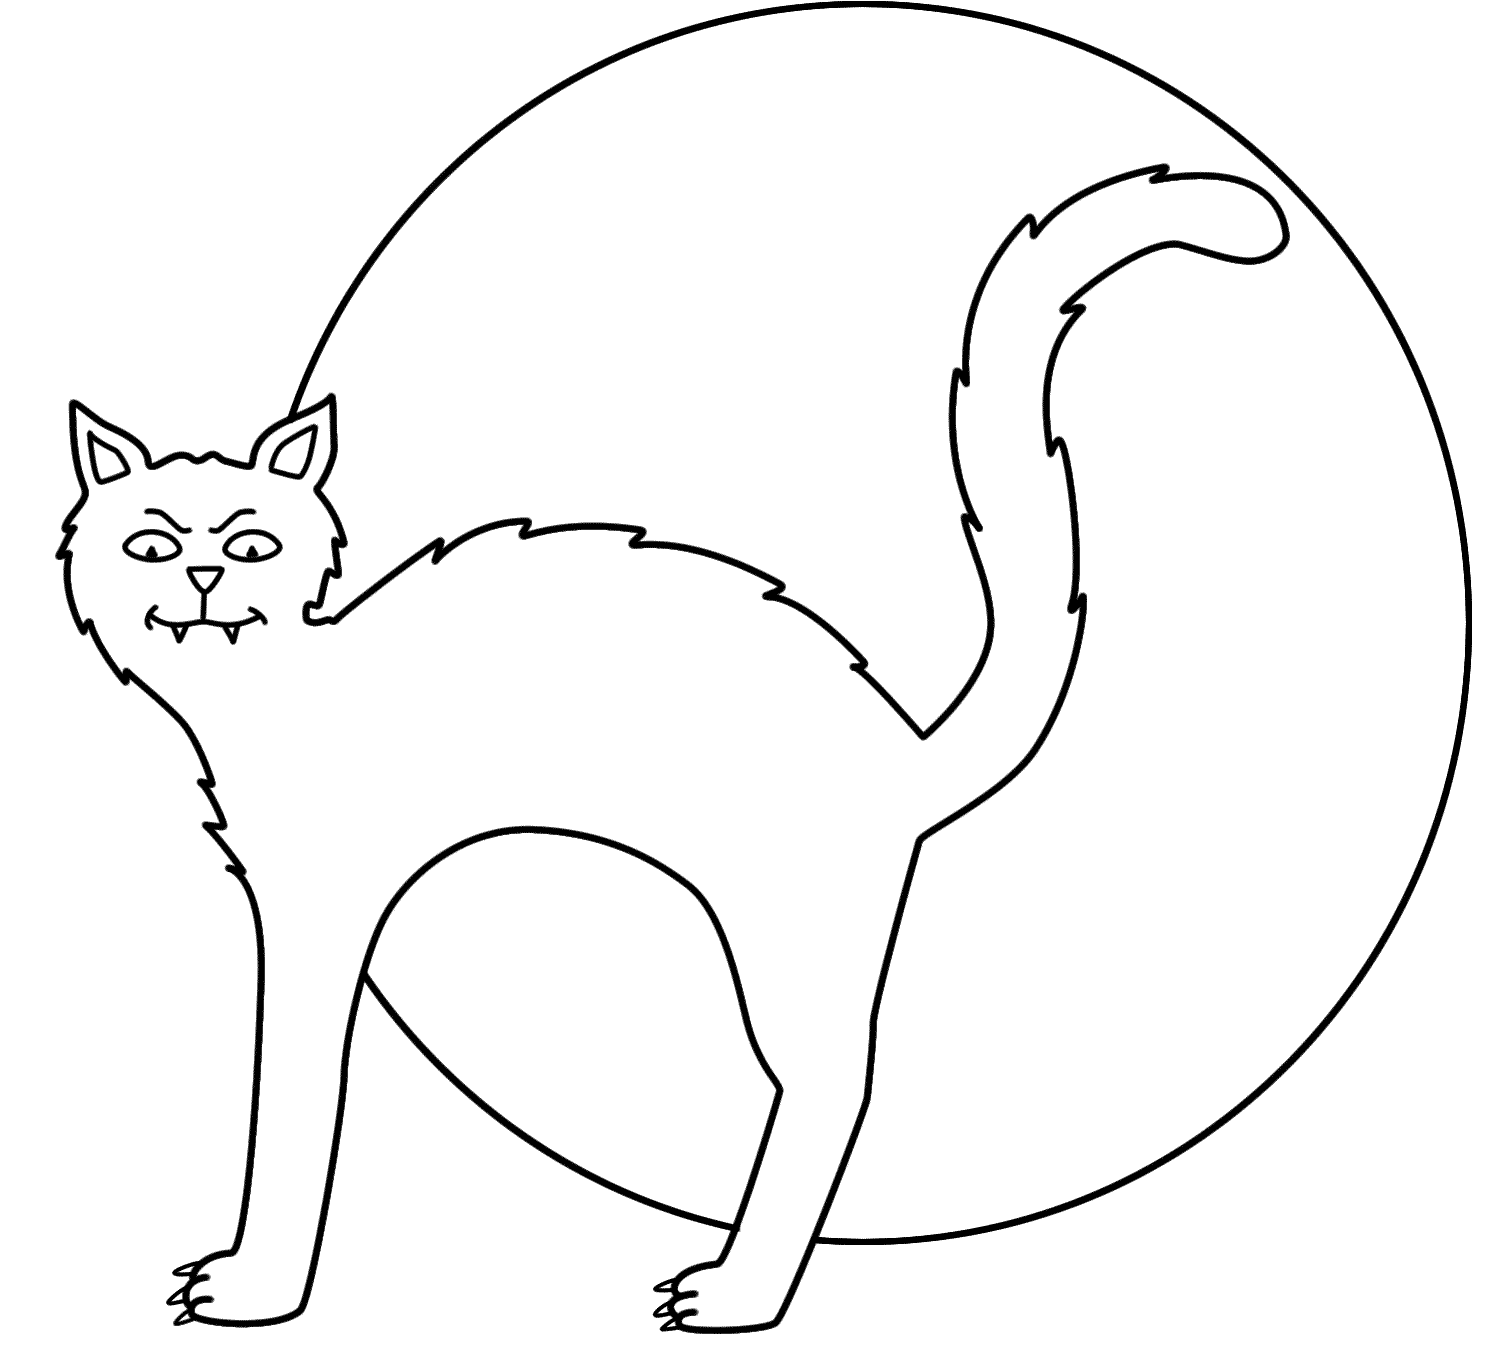 1490x1352 Halloween Coloring Pages Of Black Cats